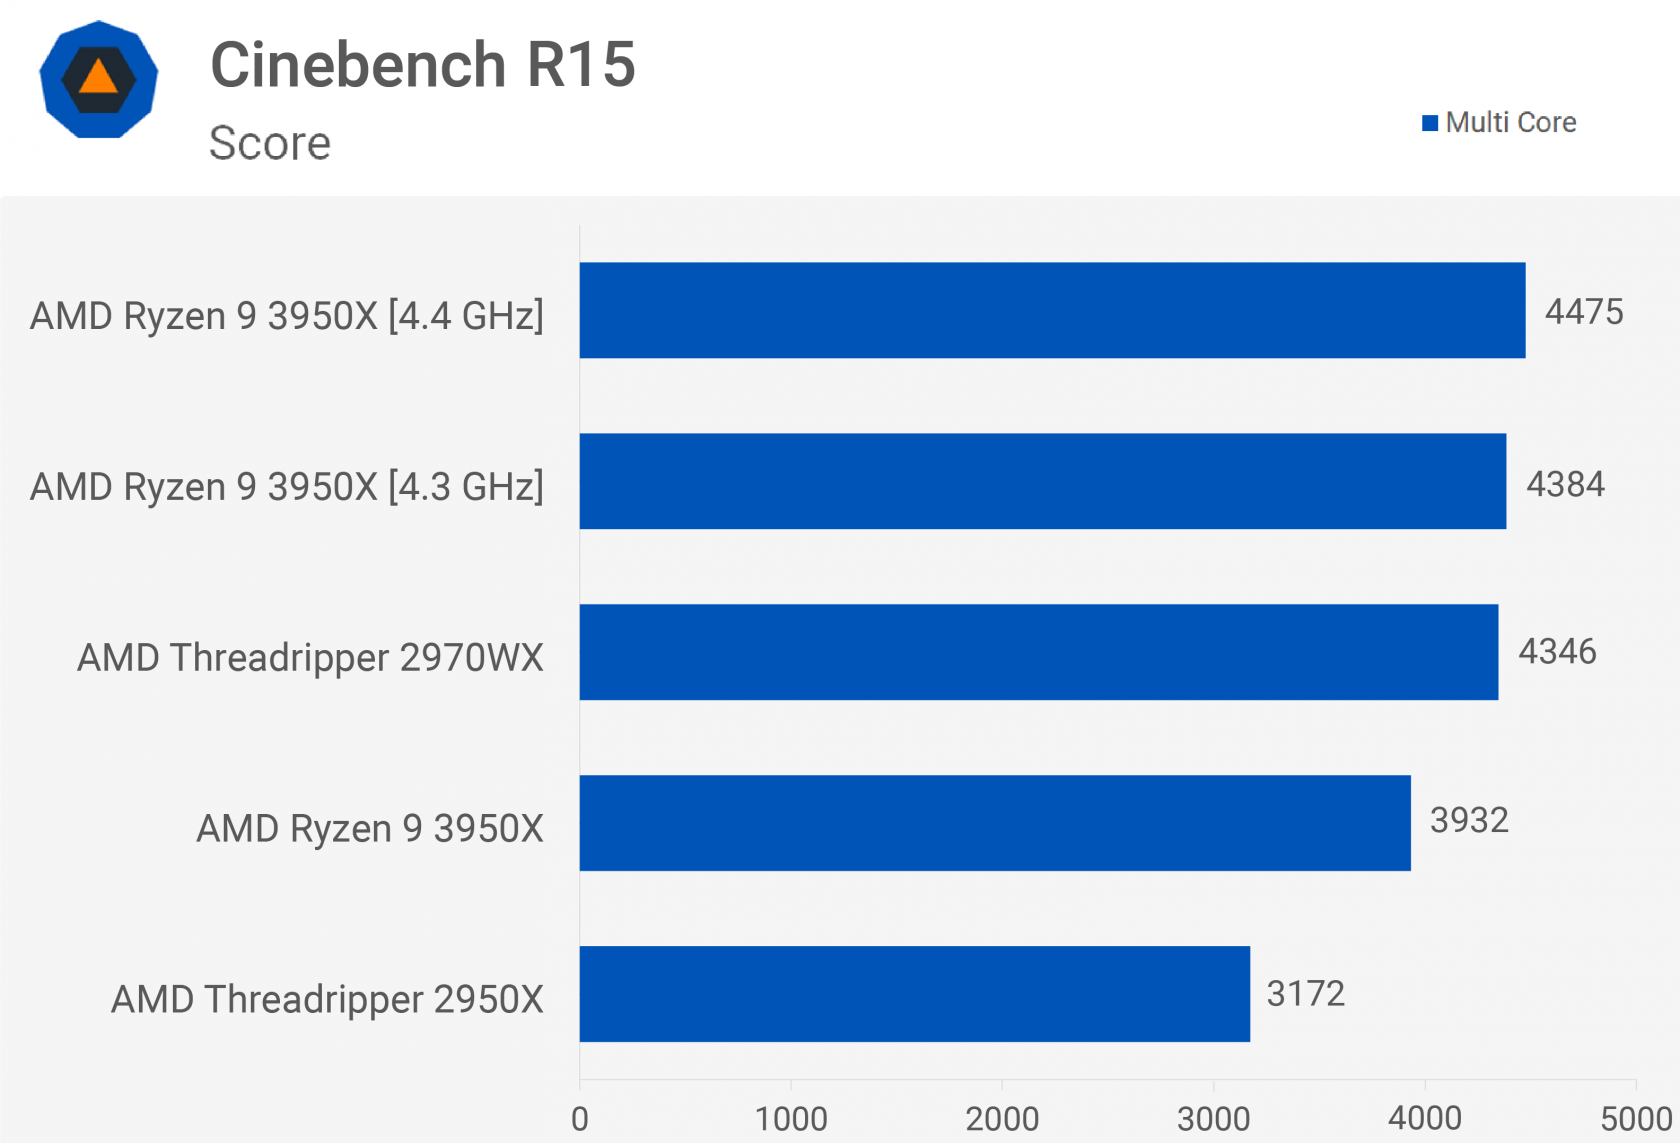 Overclocked Ryzen 9 3950X outperforms 24-core 2970WX in Cinebench